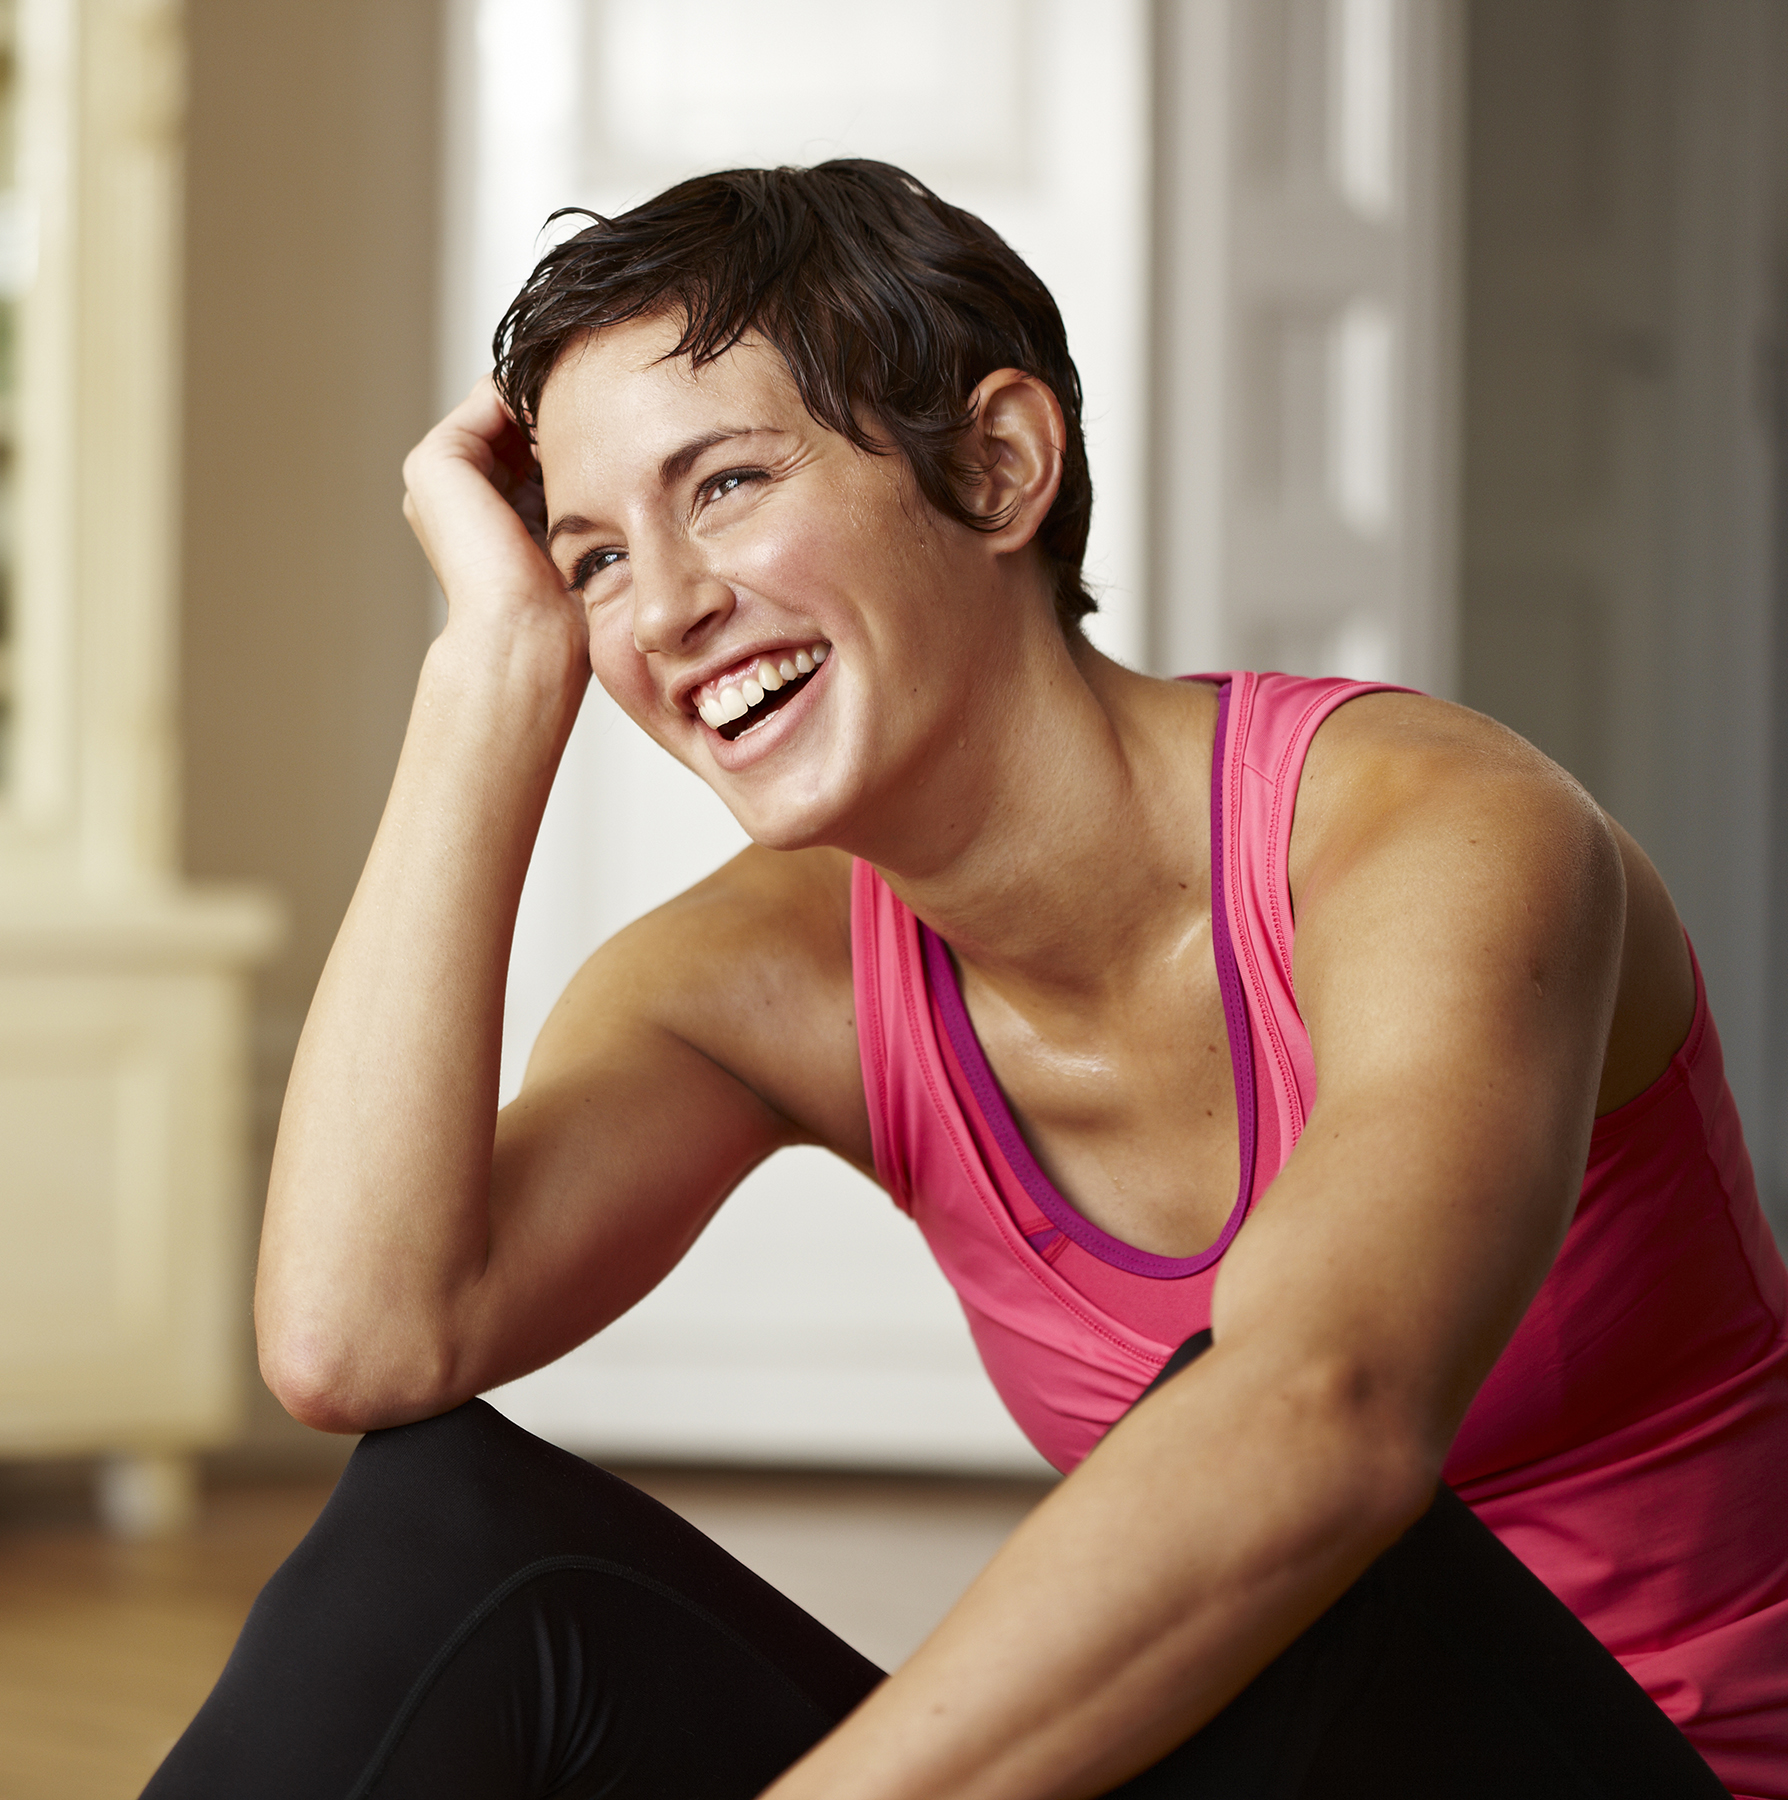 Healthy woman laughing